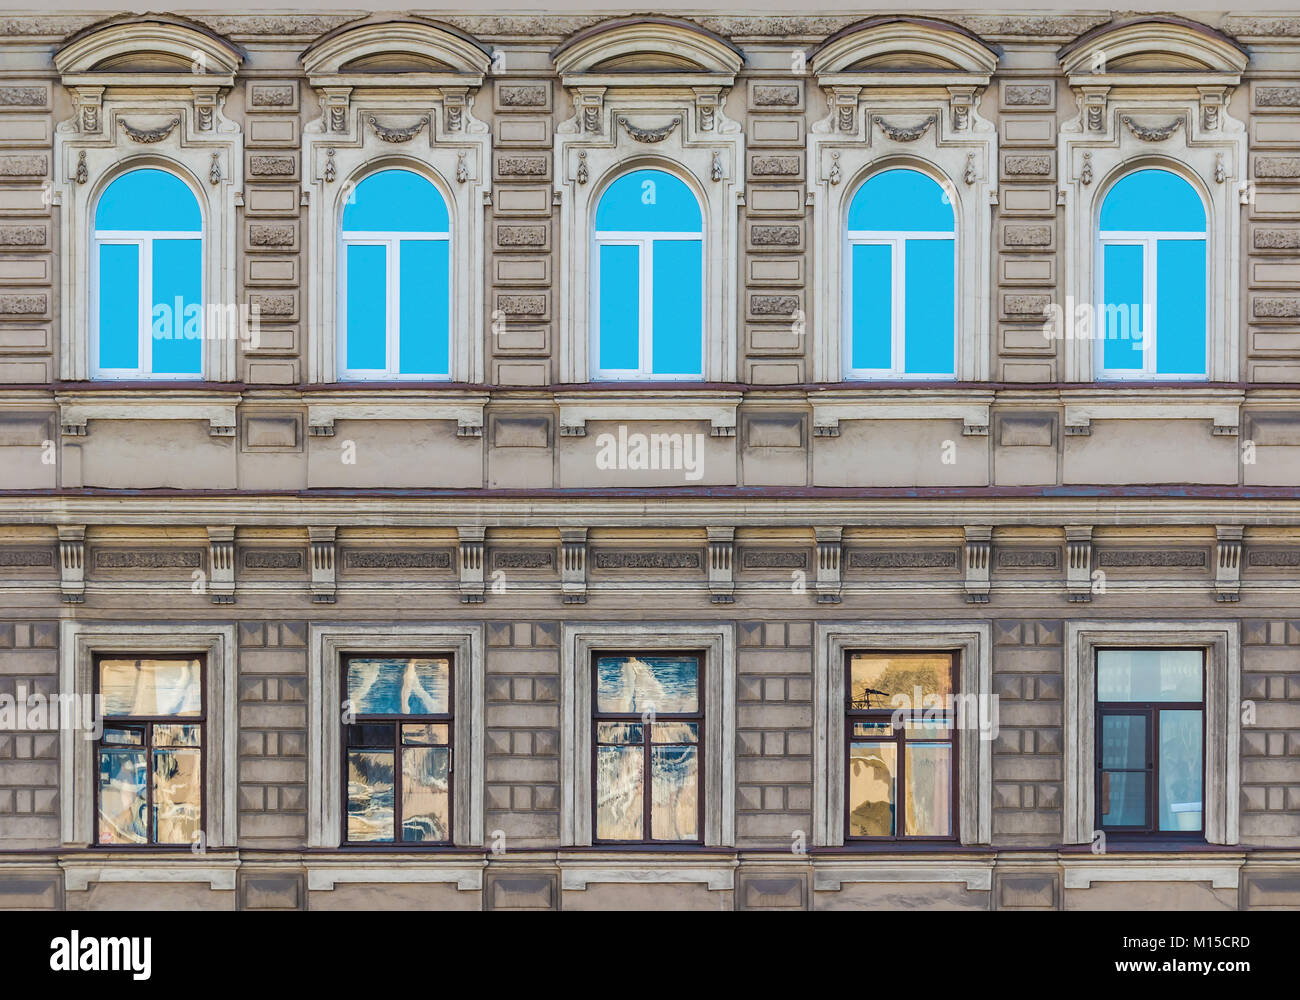 Several windows in a row on the facade of the urban historic building front view, Saint Petersburg, Russia - Stock Image